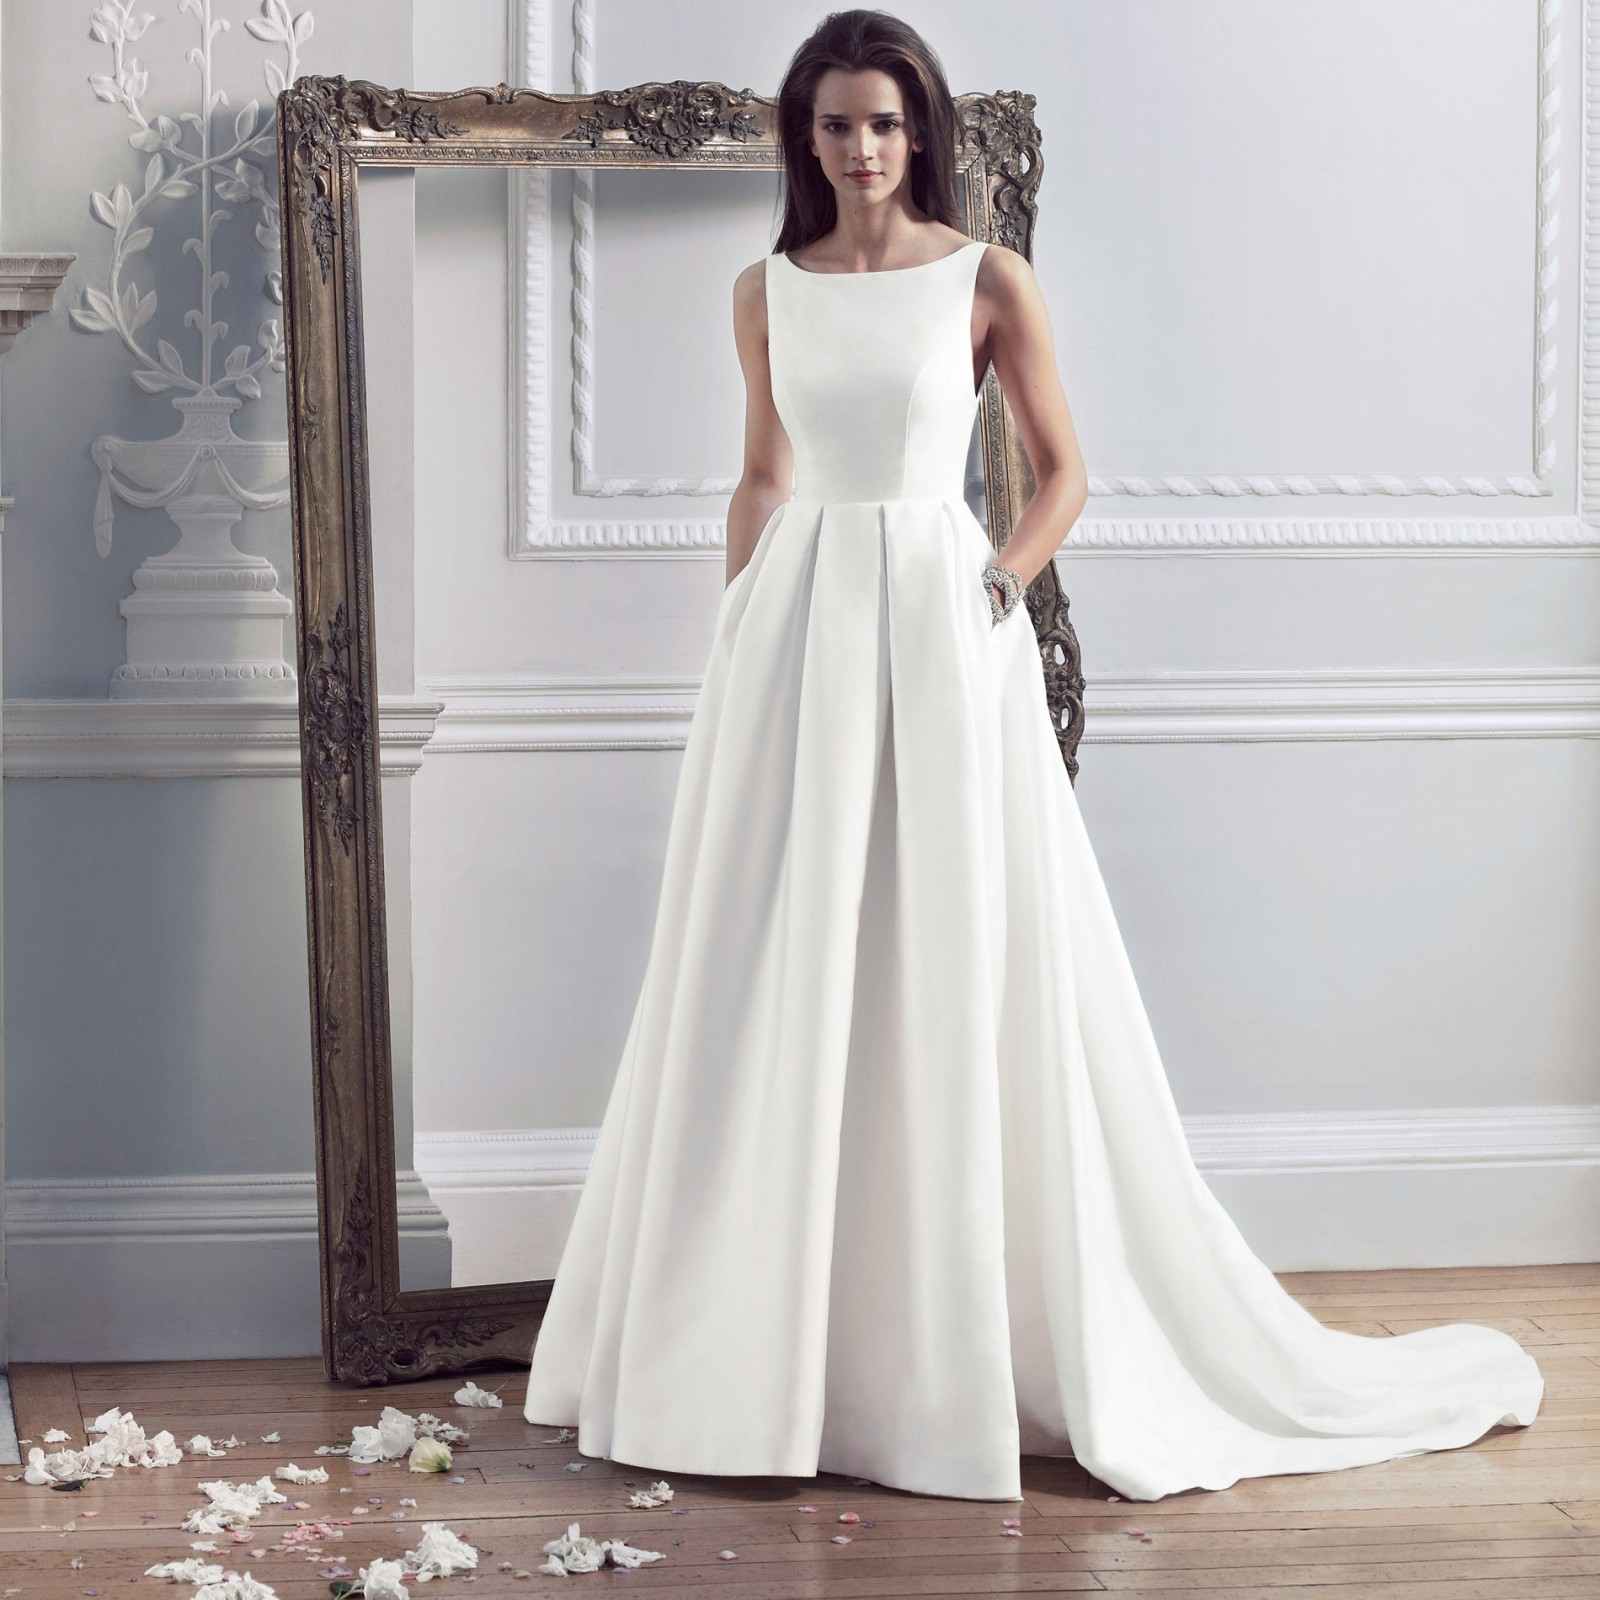 hepburn boat neck wedding dress HEPBURN